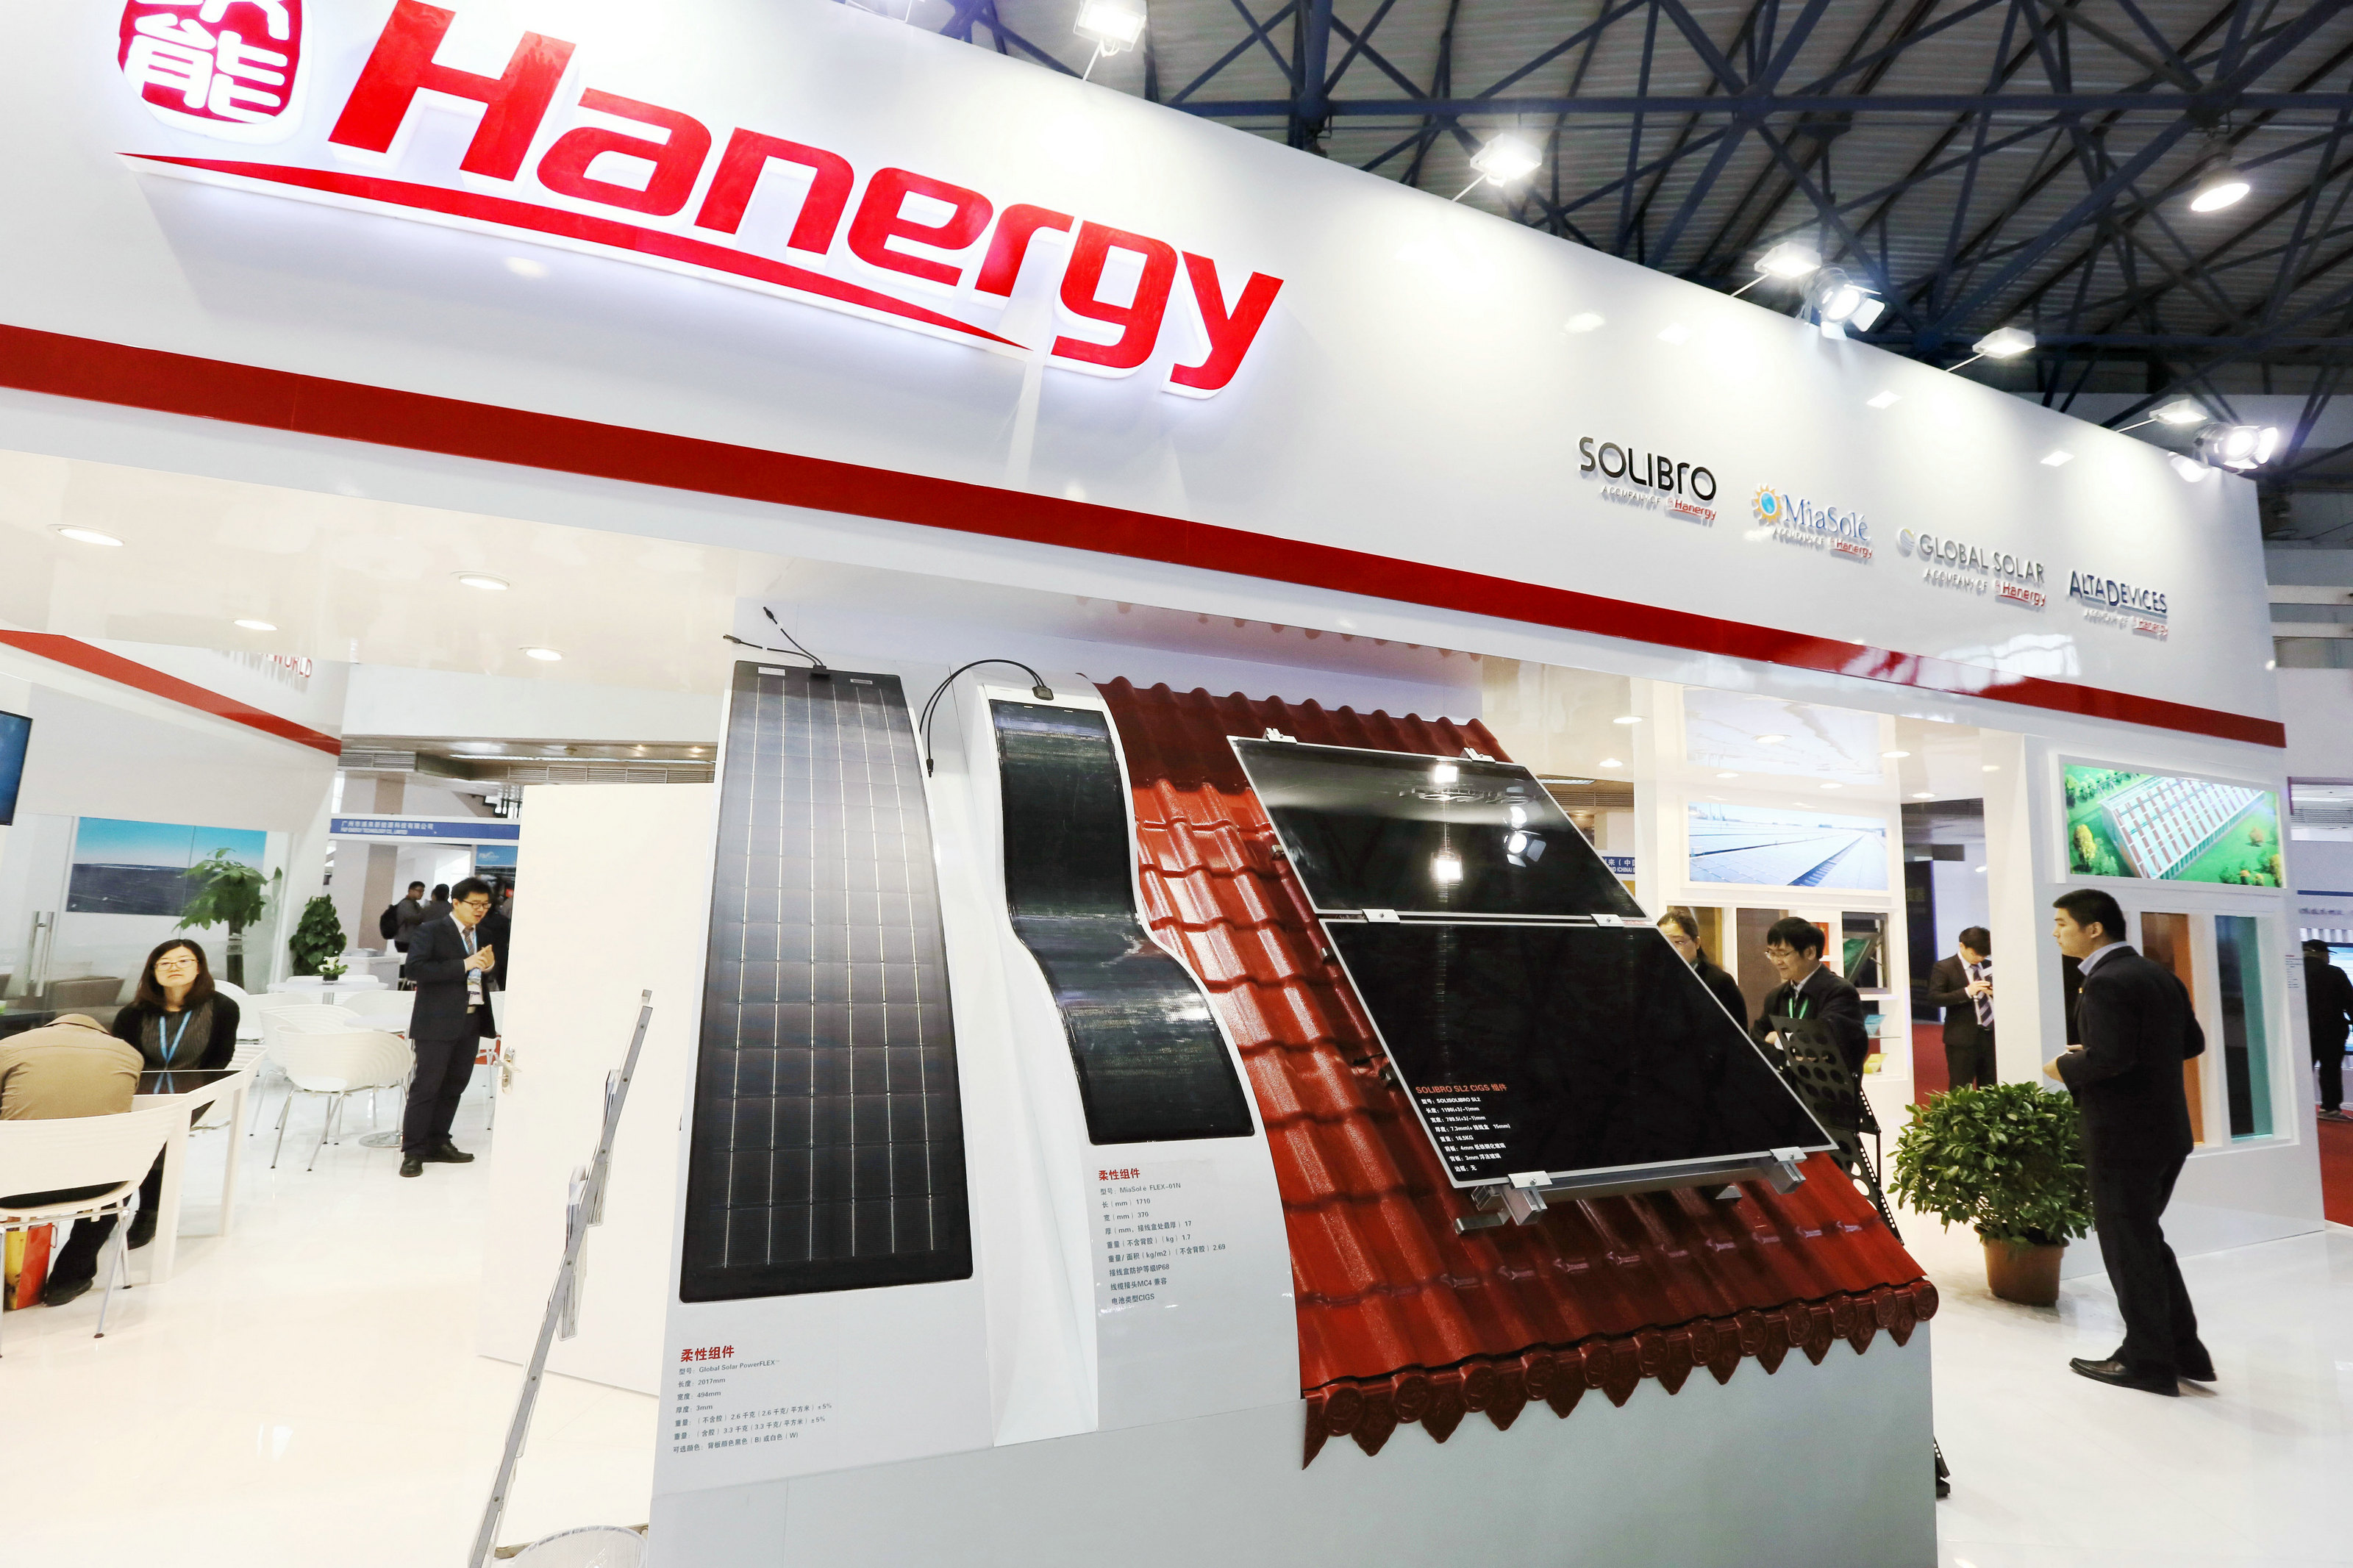 --FILE--People visit the stand of Hanergy during an exhibition in Beijing, China, 1 April 2015. Hanergy Group founder Li Hejun has raised his holding in the company's Hong Kong-listed solar business, signalling confidence in its prospects even after a 180 per cent share price rise this year — and netting a $4.8m paper profit in less than a week. Hong Kong-listed Hanergy Thin Film has come under scrutiny in recent months because of its soaring share price and the high level of sales it makes to its own parent company. Shares in HTF have climbed 350 per cent in six months, making the solar equipment supplier the best performer in Hong Kong's Hang Seng Composite index. But, in the past week, Mr Li has spent HK$264m ($33.9m) buying more HTF shares at between HK$6.9 and HK$6.92, according to regulatory filings with the Hong Kong Stock Exchange. On Thursday (23 April 2015), shares in HTF, which had traded tightly between HK$6.9 and HK$6.93 since April 16, jumped 14.2 per cent to close at HK$7.88, giving Mr Li a $4.8m paper profit on his latest investments in the company. In another filing on Thursday, made at the request of the stock exchange, HTF said it knew of no reason for Thursday's increased price and trading volume, nor of any information that should be disclosed to the market.